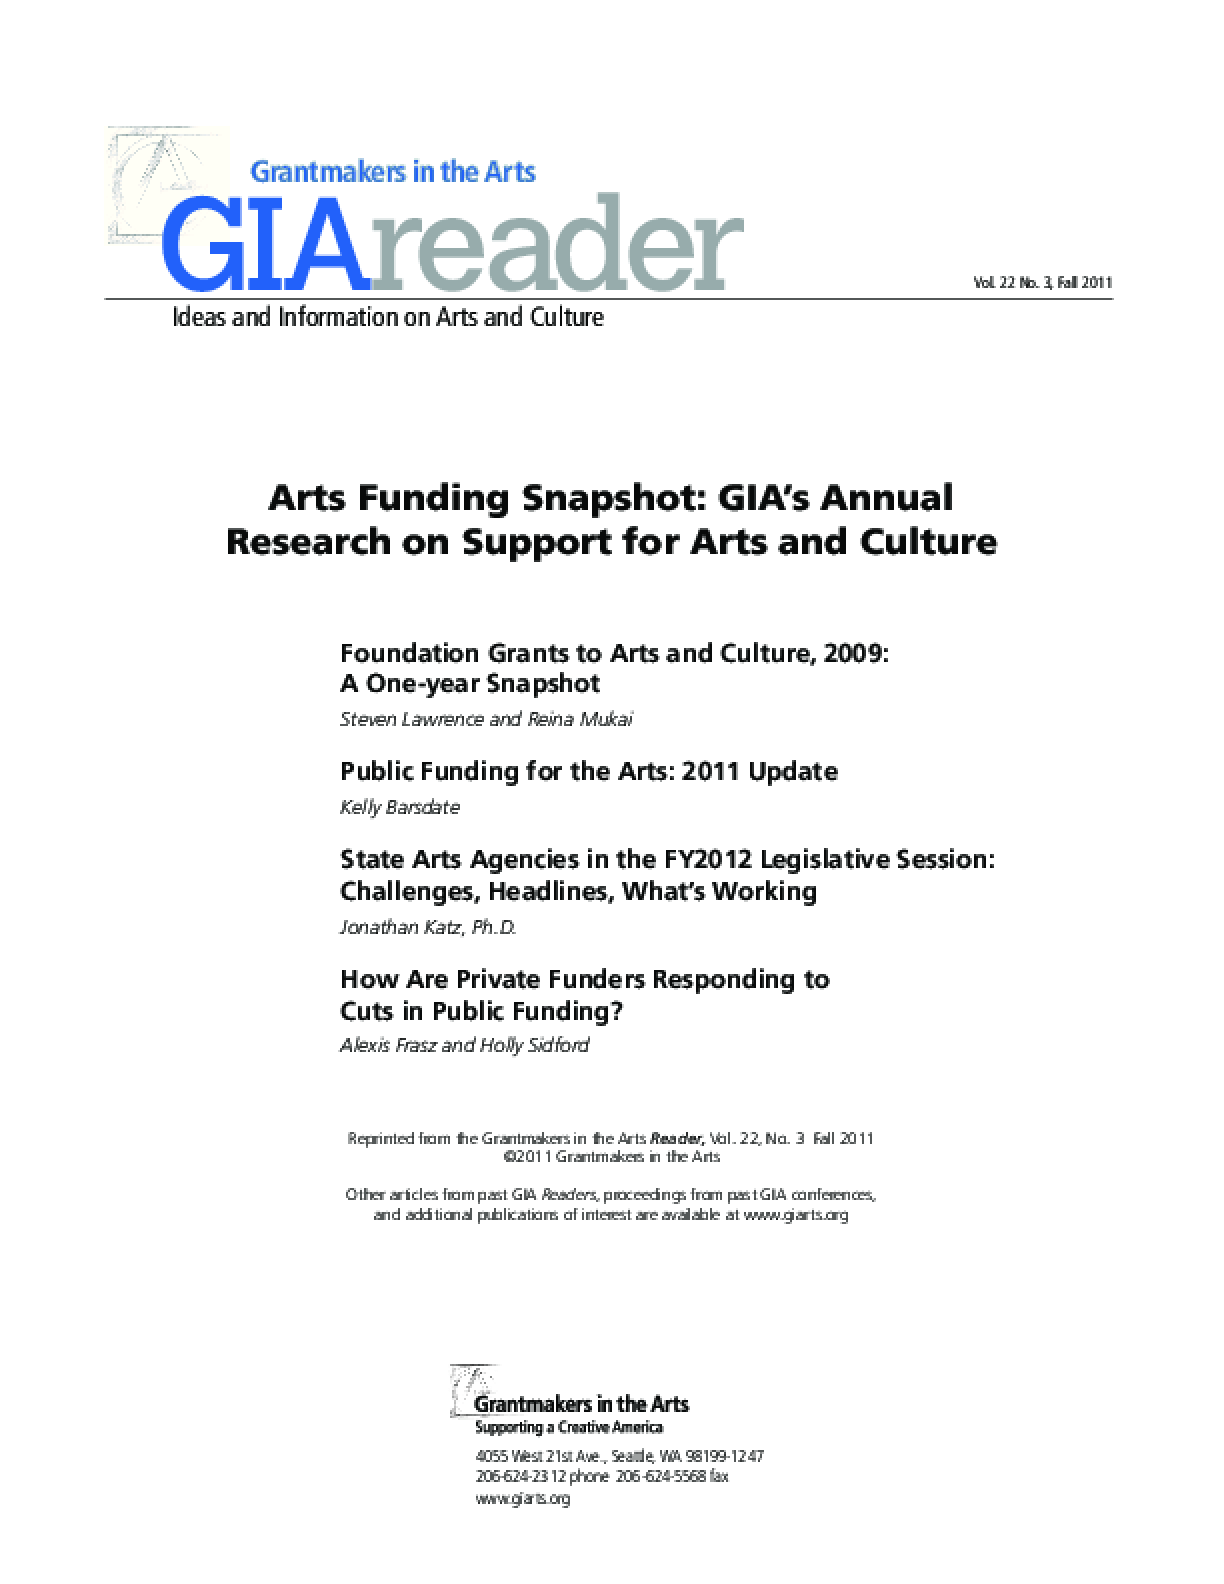 Arts Funding Snapshot: GIA's Annual Research on Support for Arts and Culture, 2011